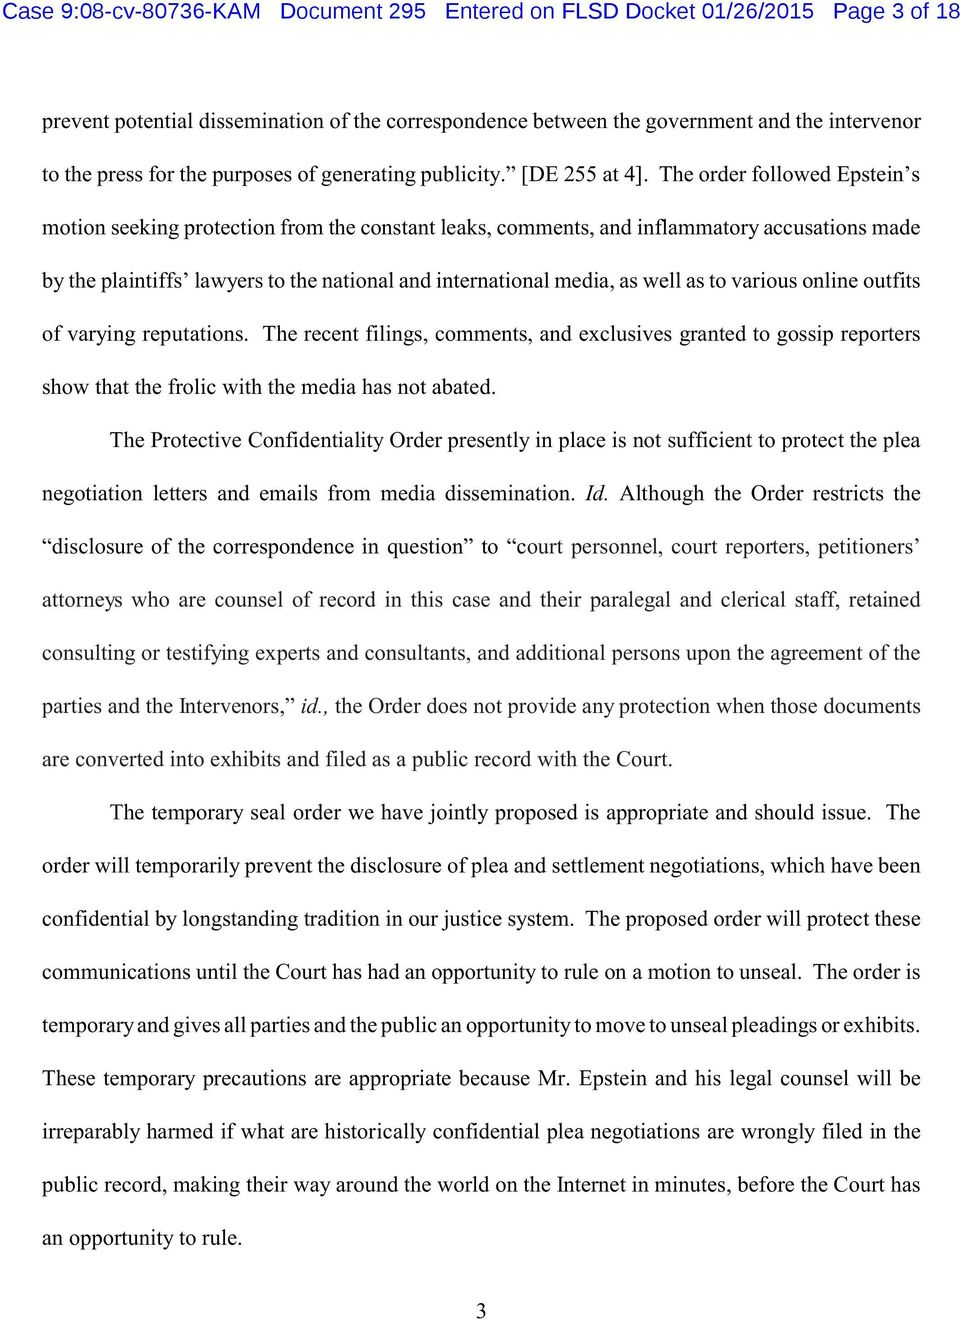 The order followed Epstein s motion seeking protection from the constant leaks, comments, and inflammatory accusations made by the plaintiffs lawyers to the national and international media, as well